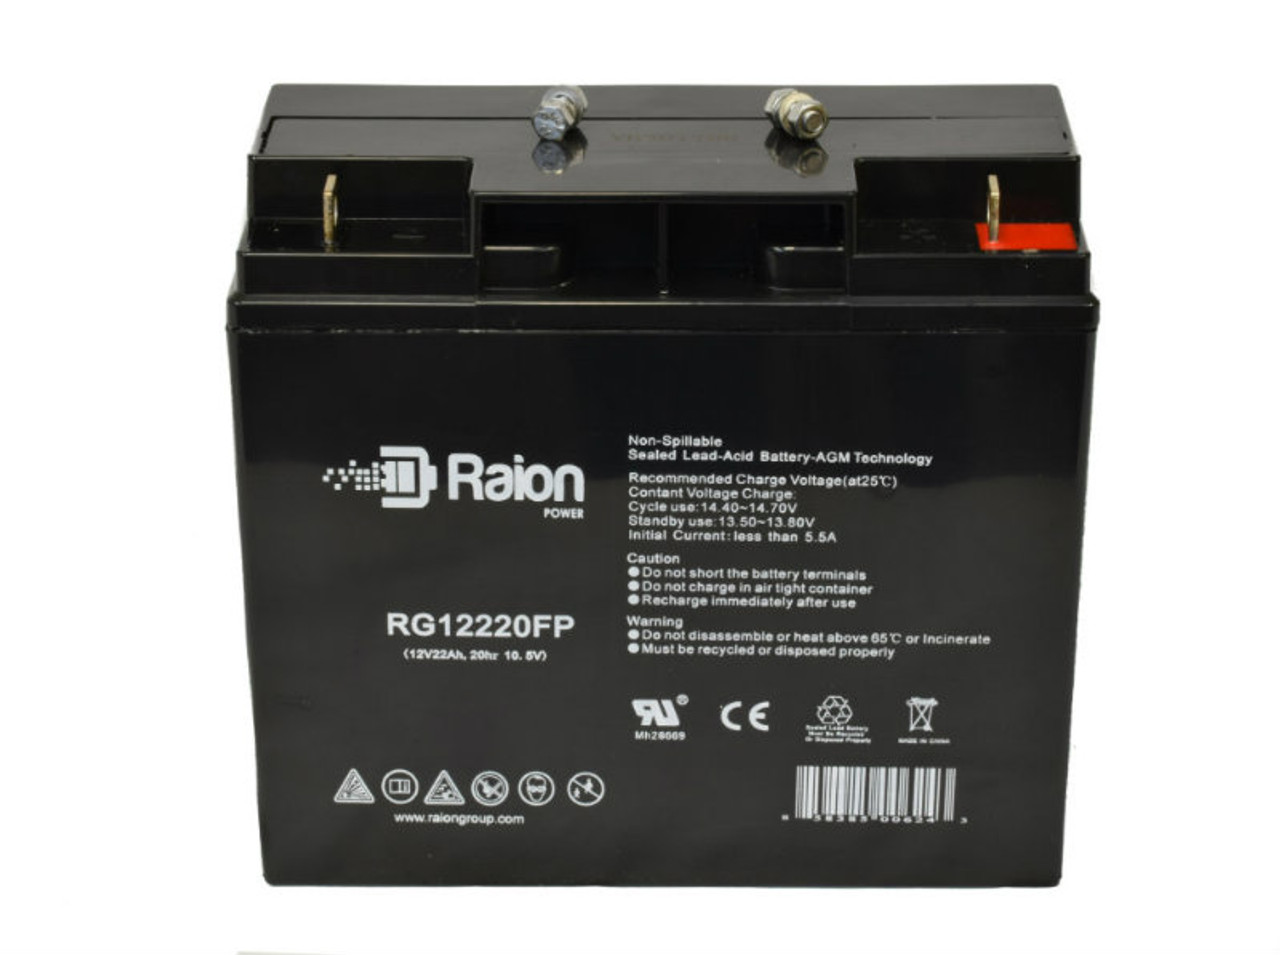 RG12220FP Sealed Lead Acid Battery Pack For Merits Pioneer 2 S246 Mobility Scooter